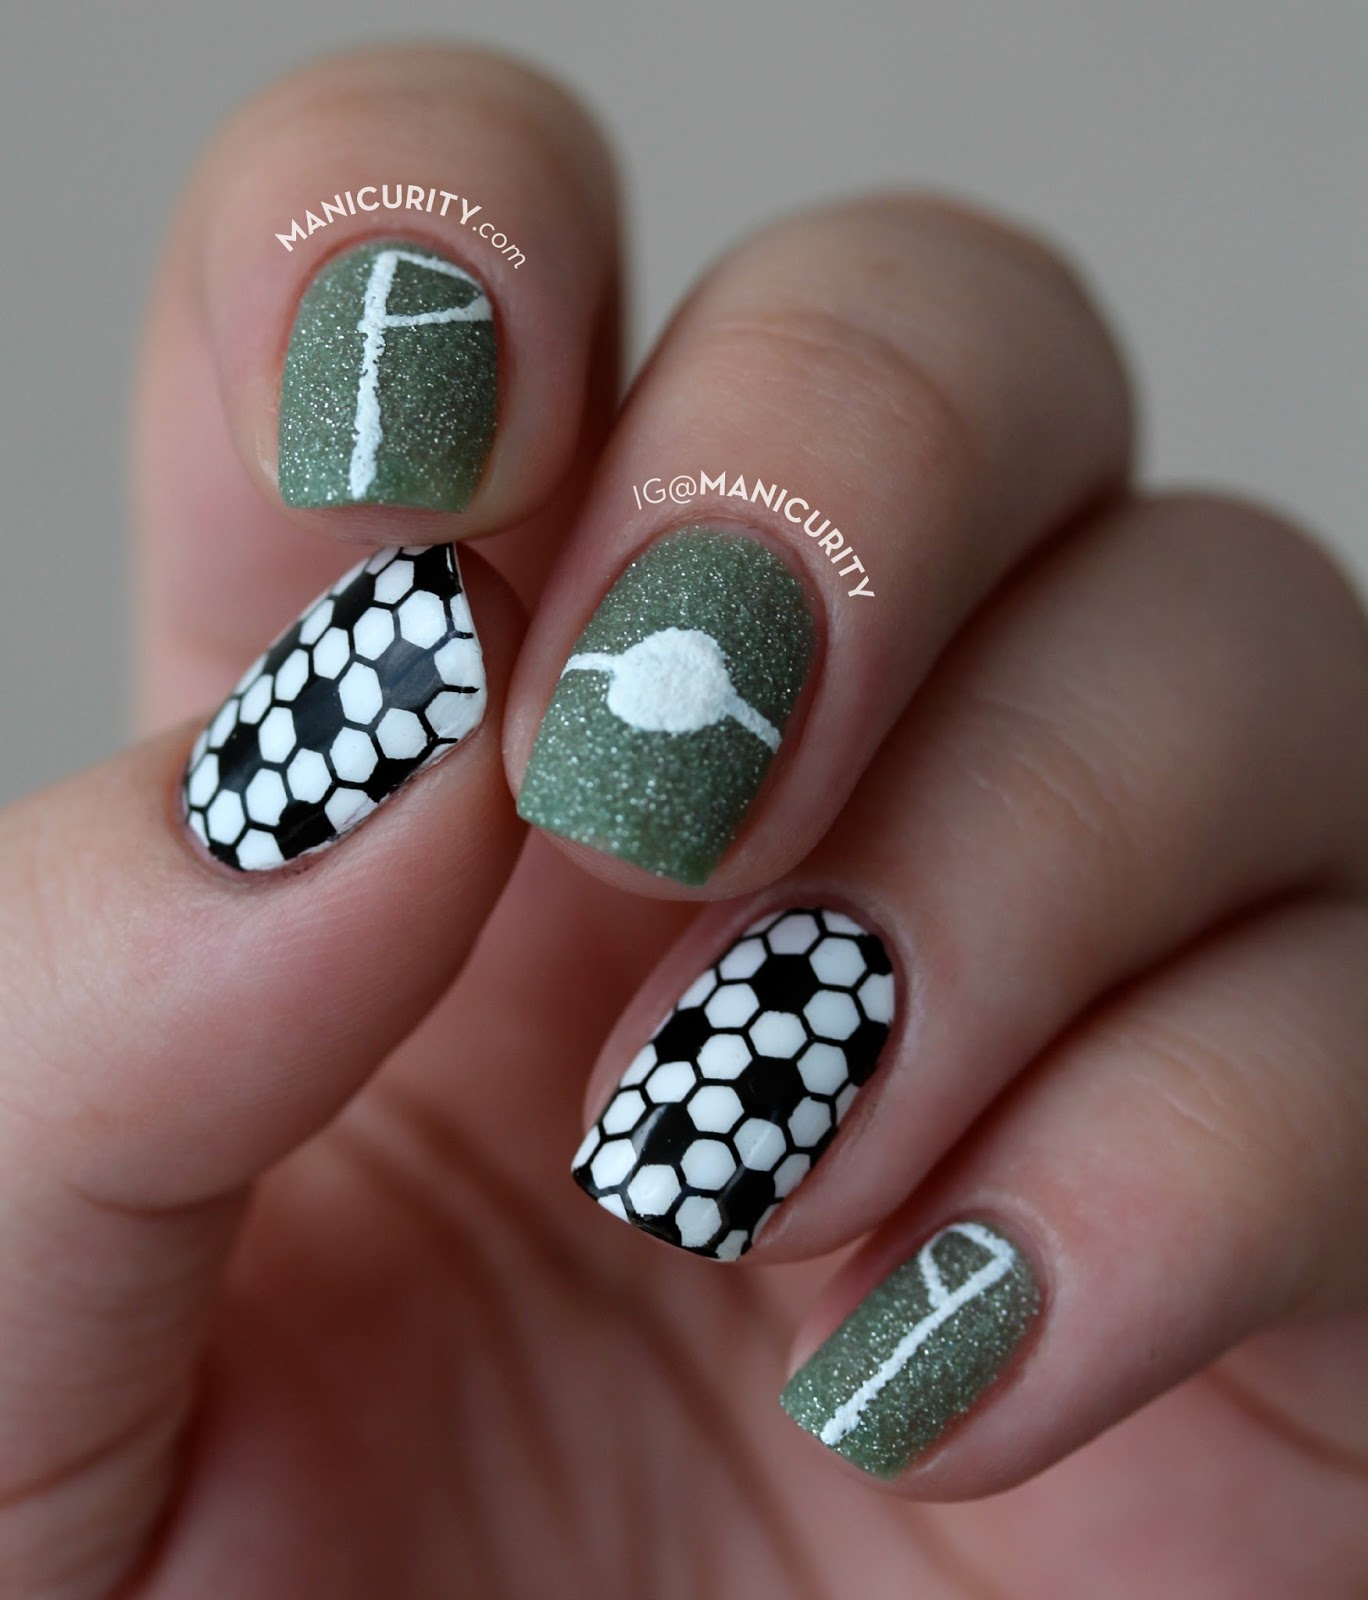 #BecauseFutbol Nails - Simple DIY Soccer Nail Art for FIFA World Cup 2014 | Manicurity.com